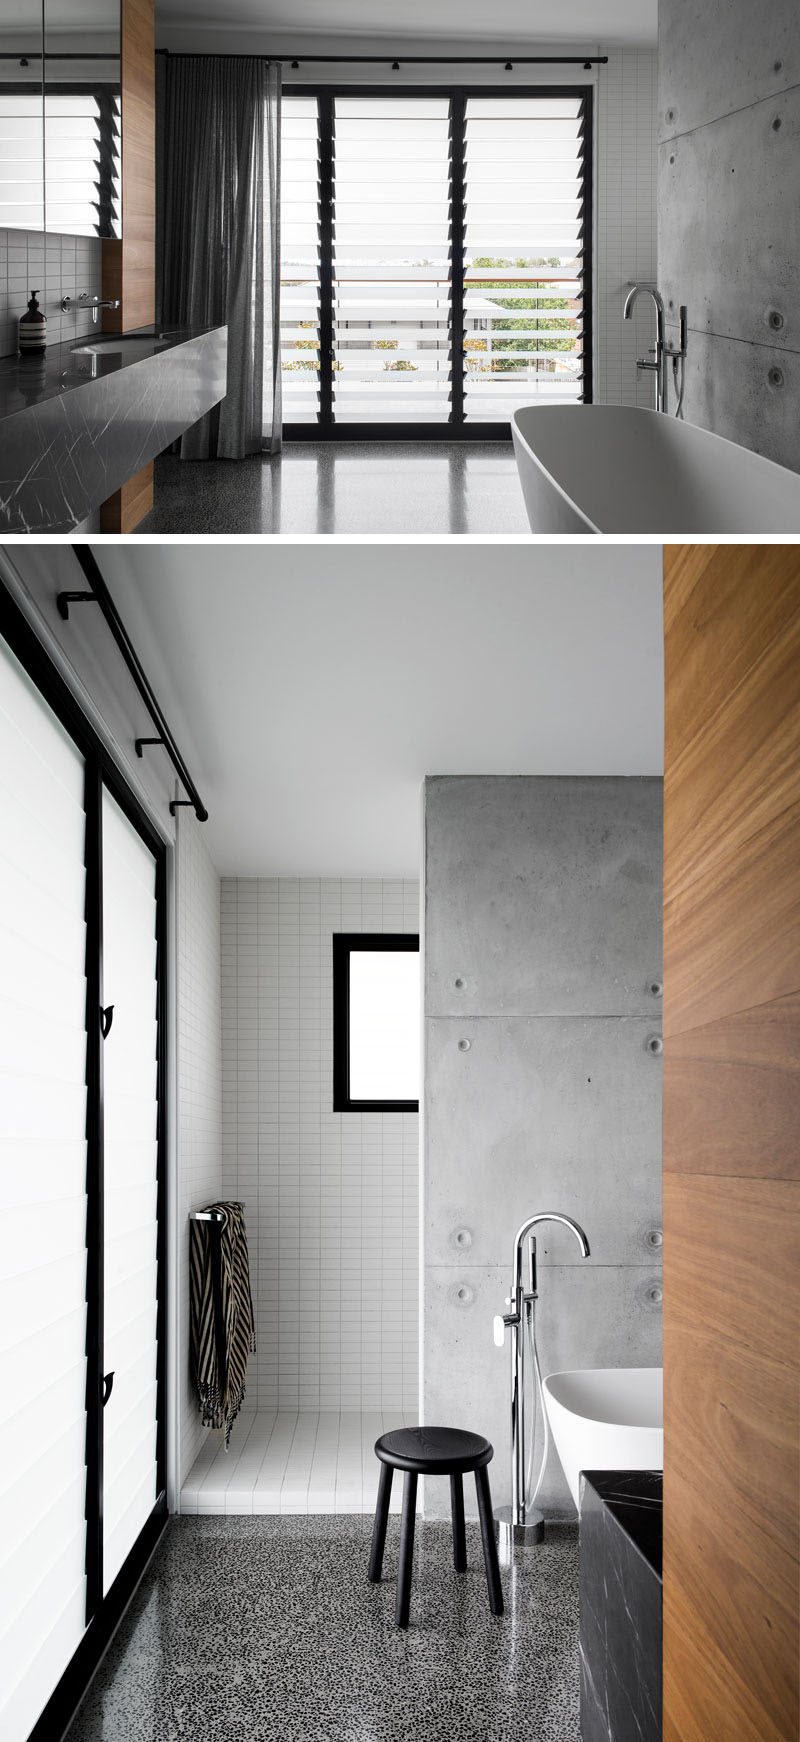 This modern has wood elements combined with concrete, stone, white tiles and black window frames. Louvre windows provide air flow and at the same time offer some privacy. #ModernBathroom #LouvreWindows